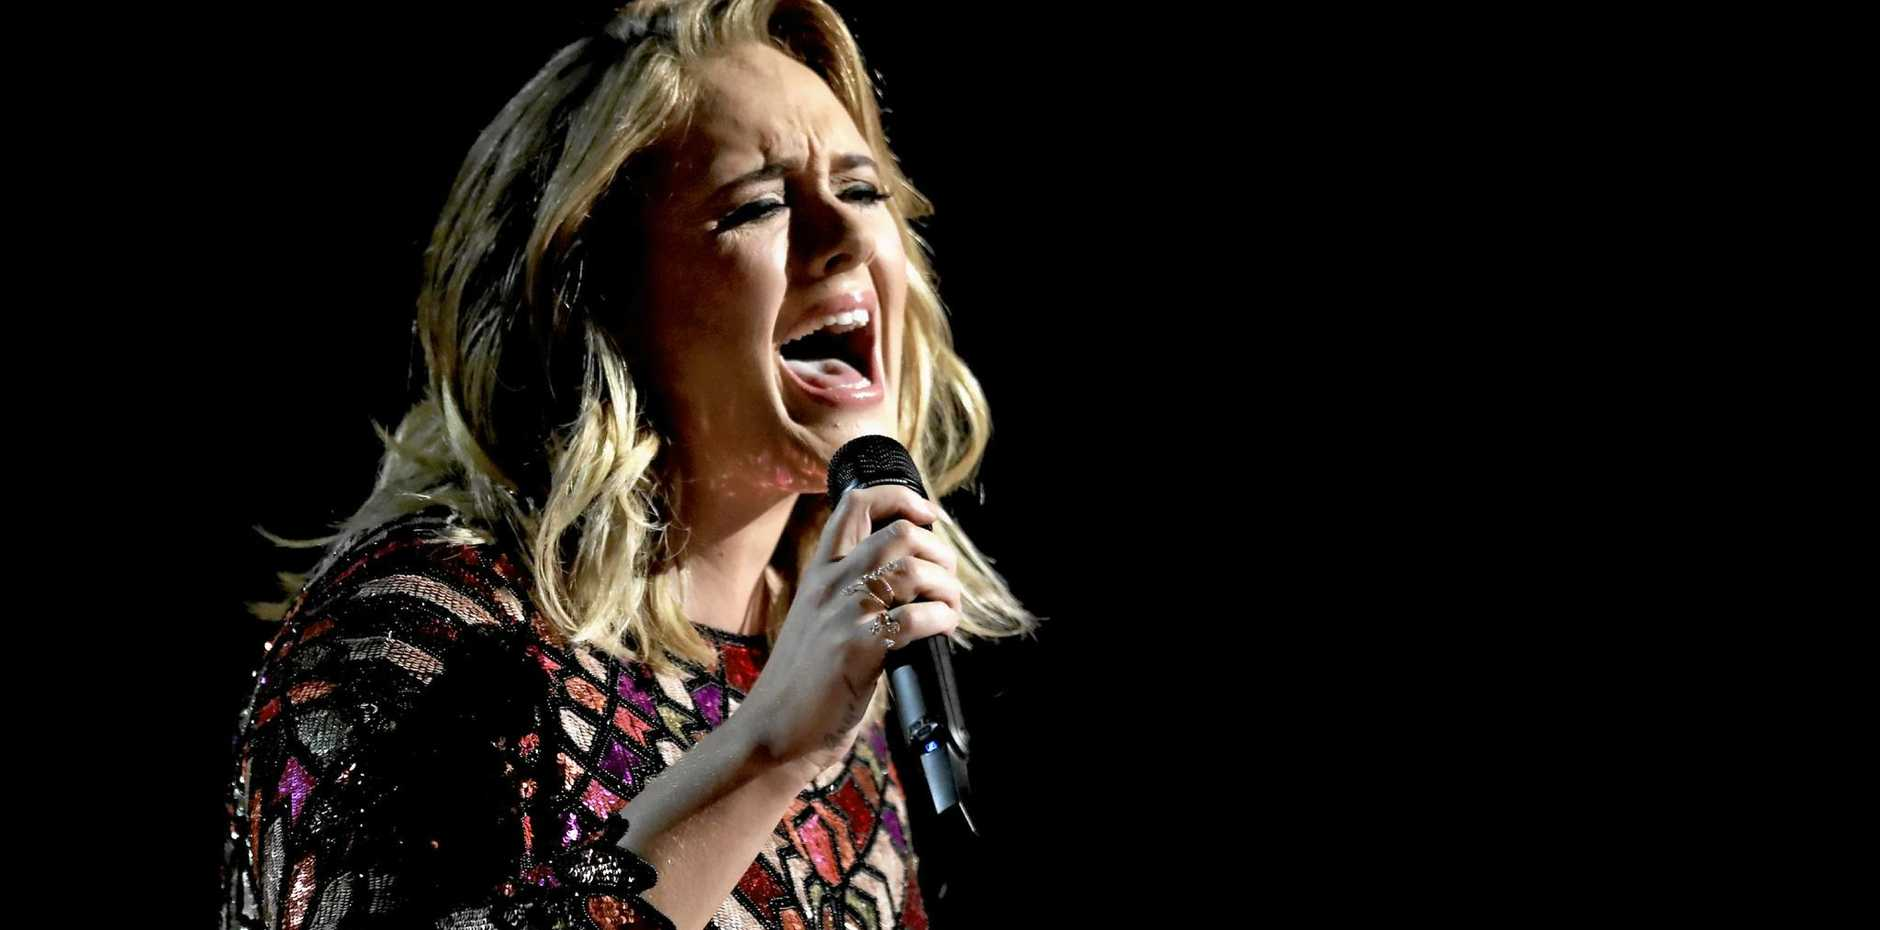 After a mammoth world tour, Adele hints she may never hit the road again.